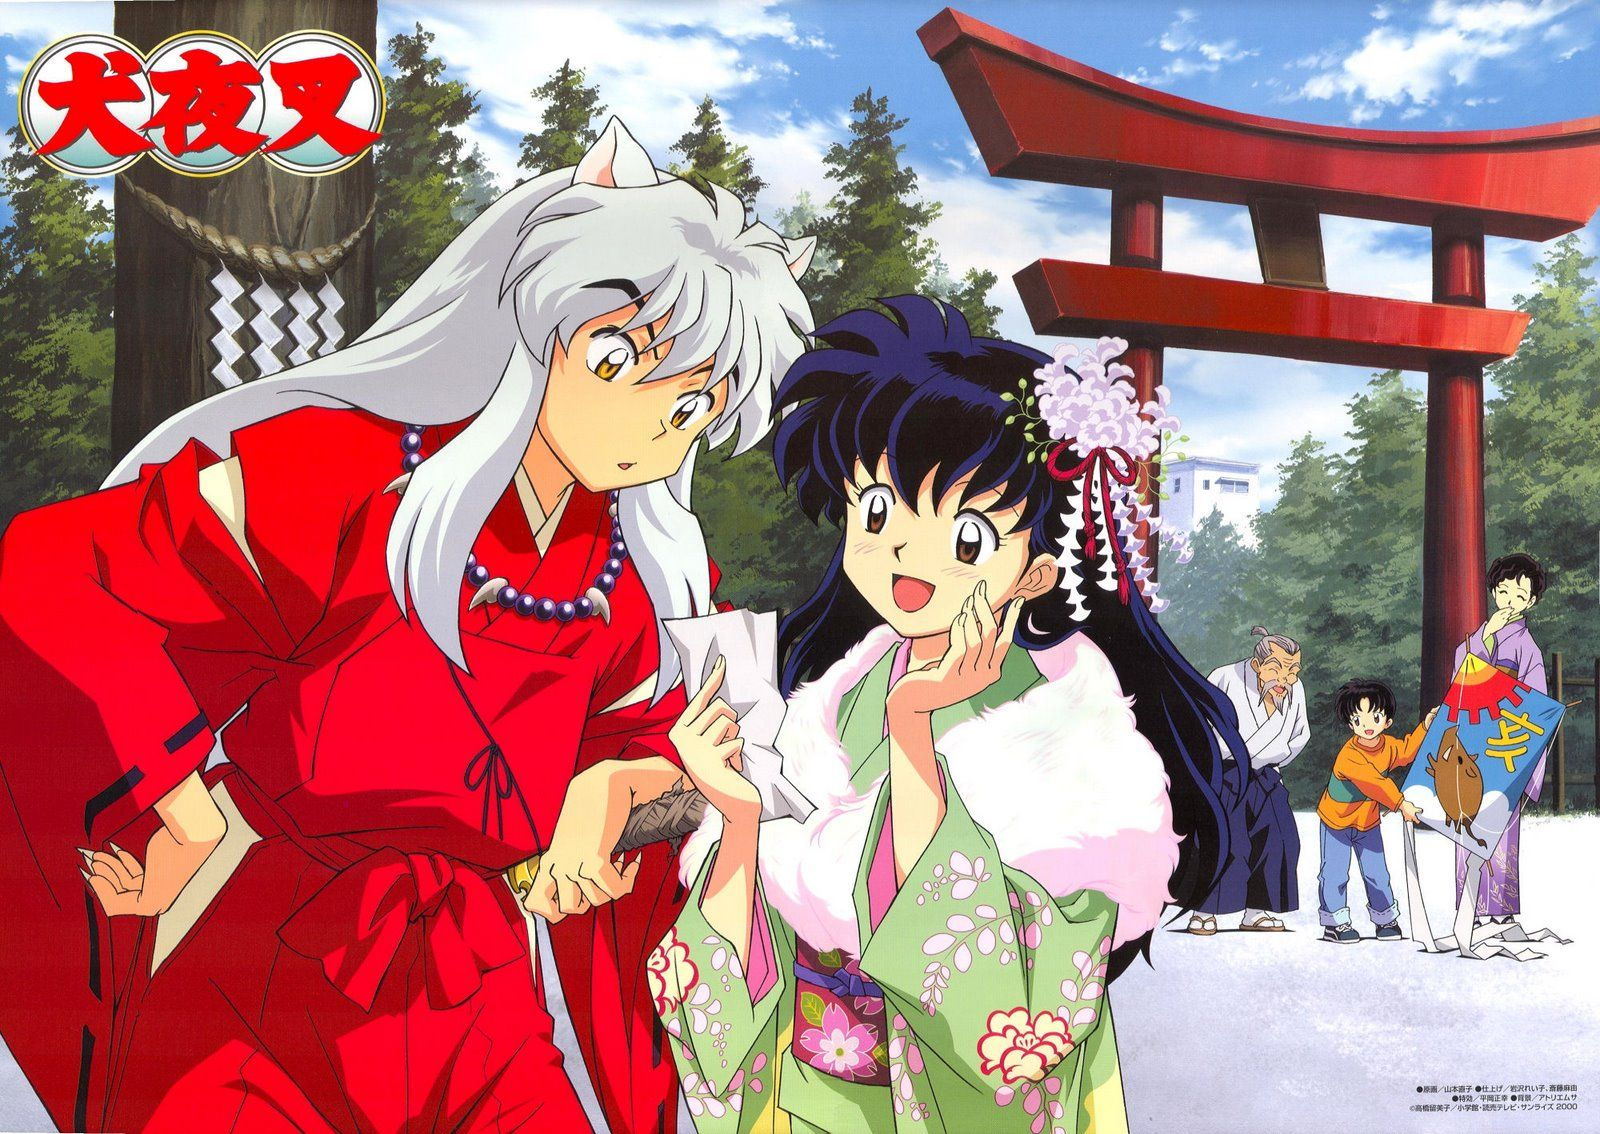 All The Pictures Of Inuyasha Anime Pictures & Wallpaper